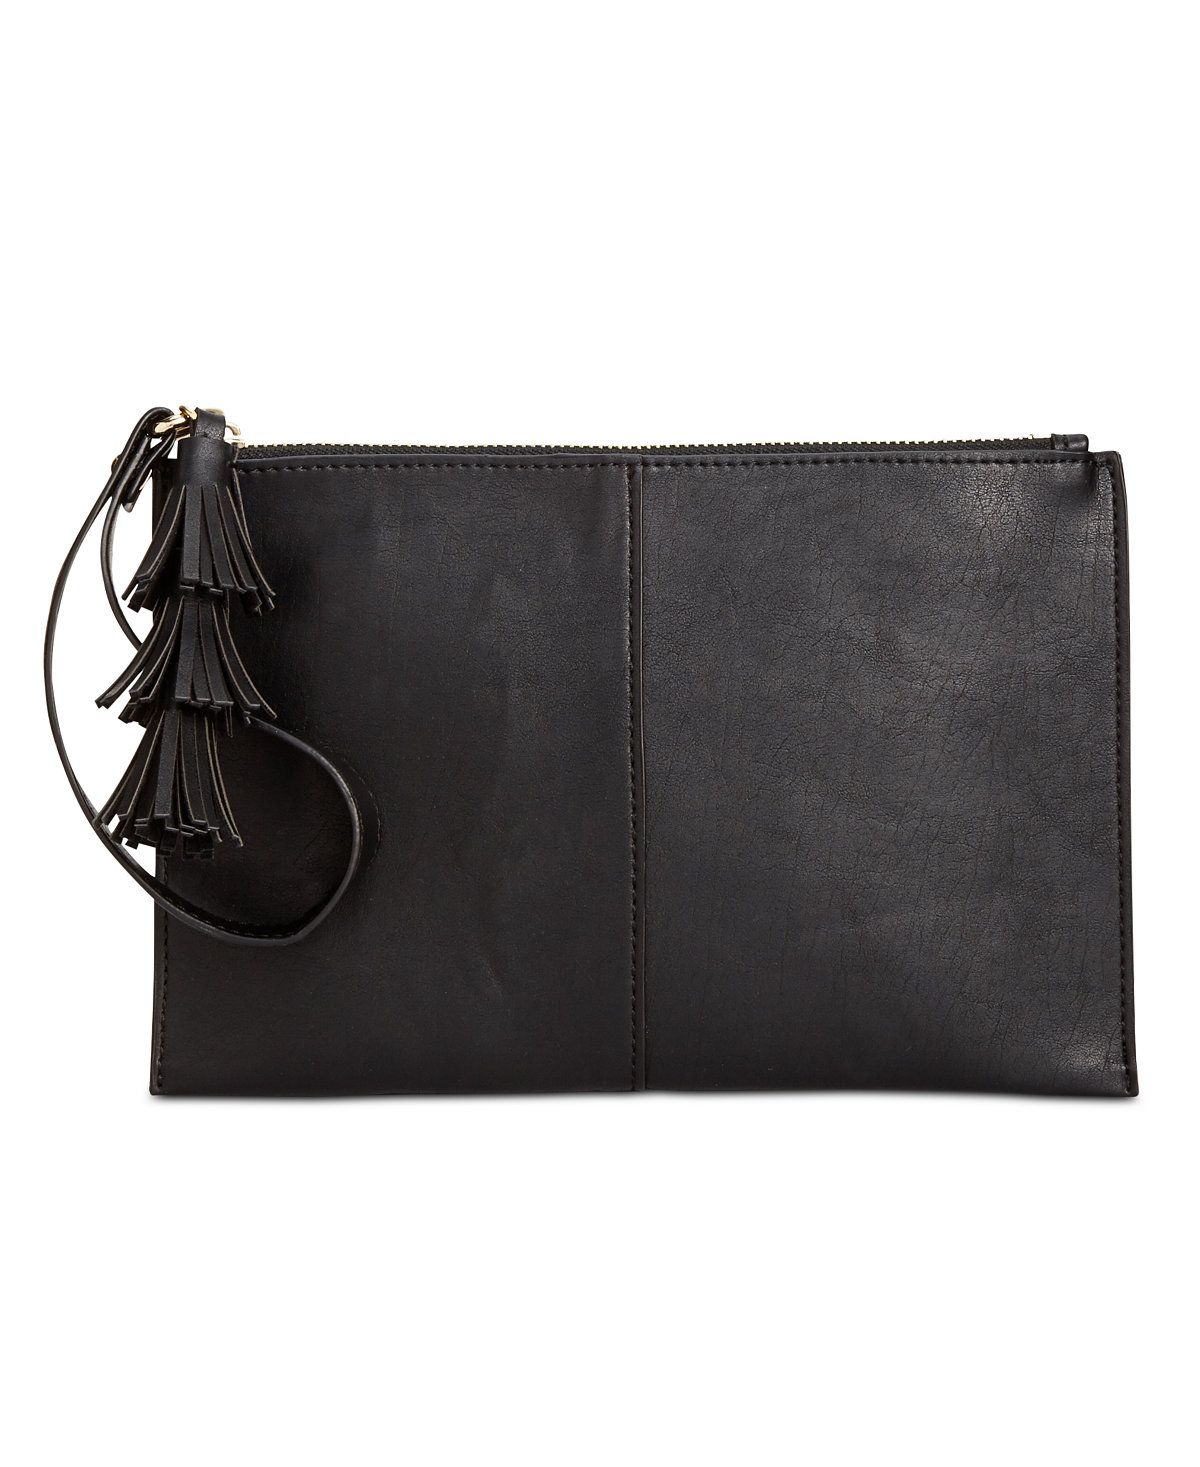 Inc International Concepts Alexa Party Pouch Only At Macy S Clutches Evening Bags Handbags Accessories